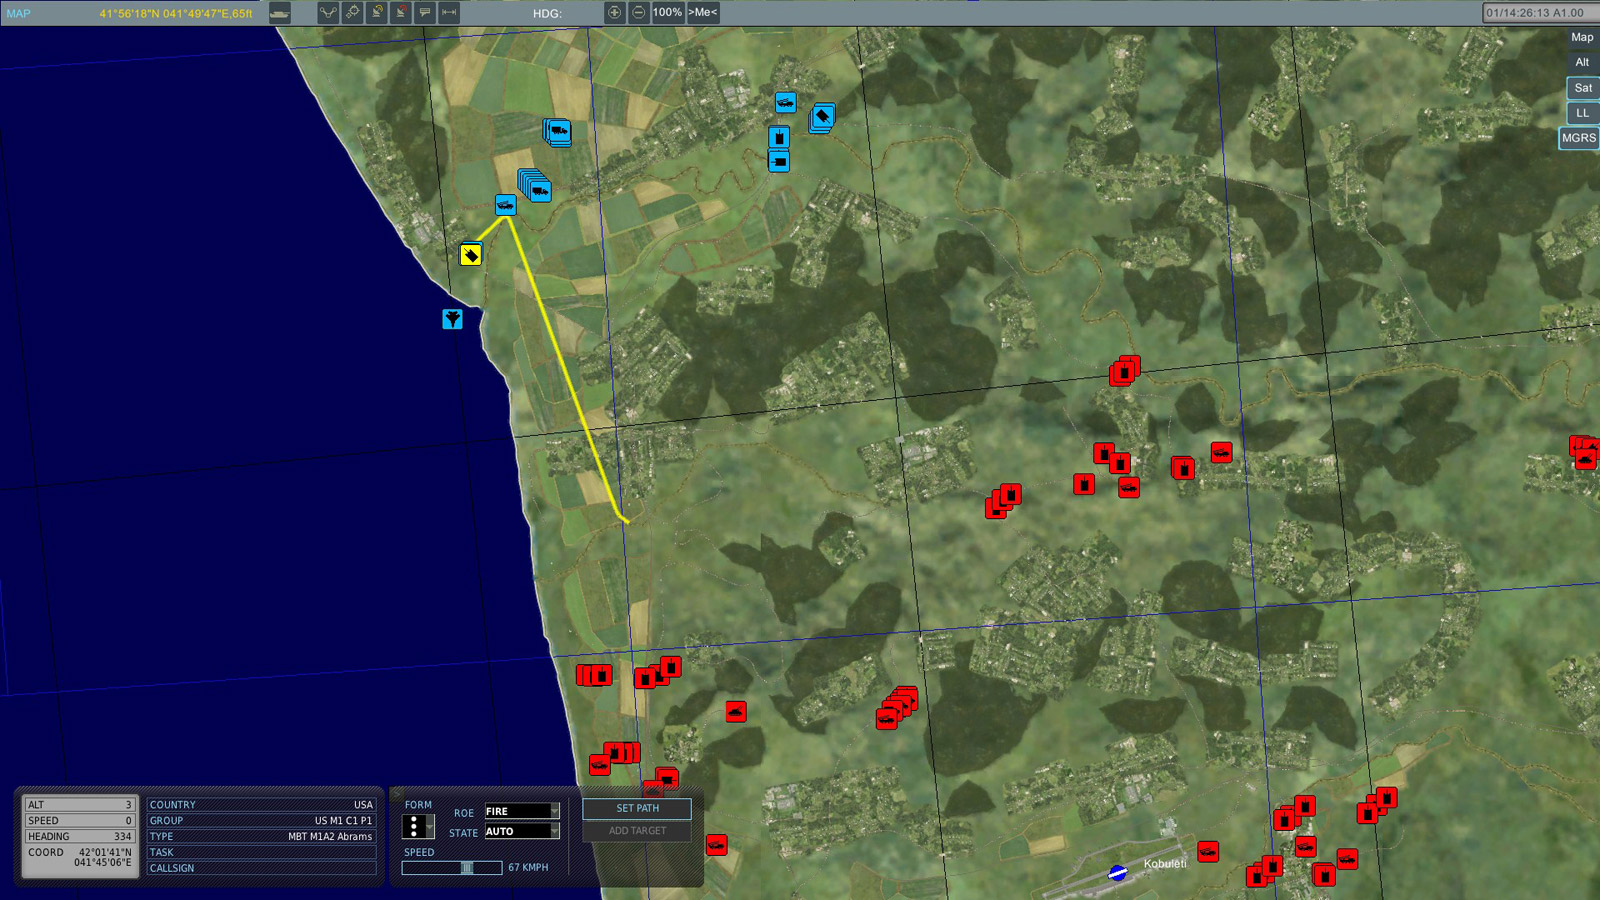 Dcs combined arms command map gumiabroncs Gallery